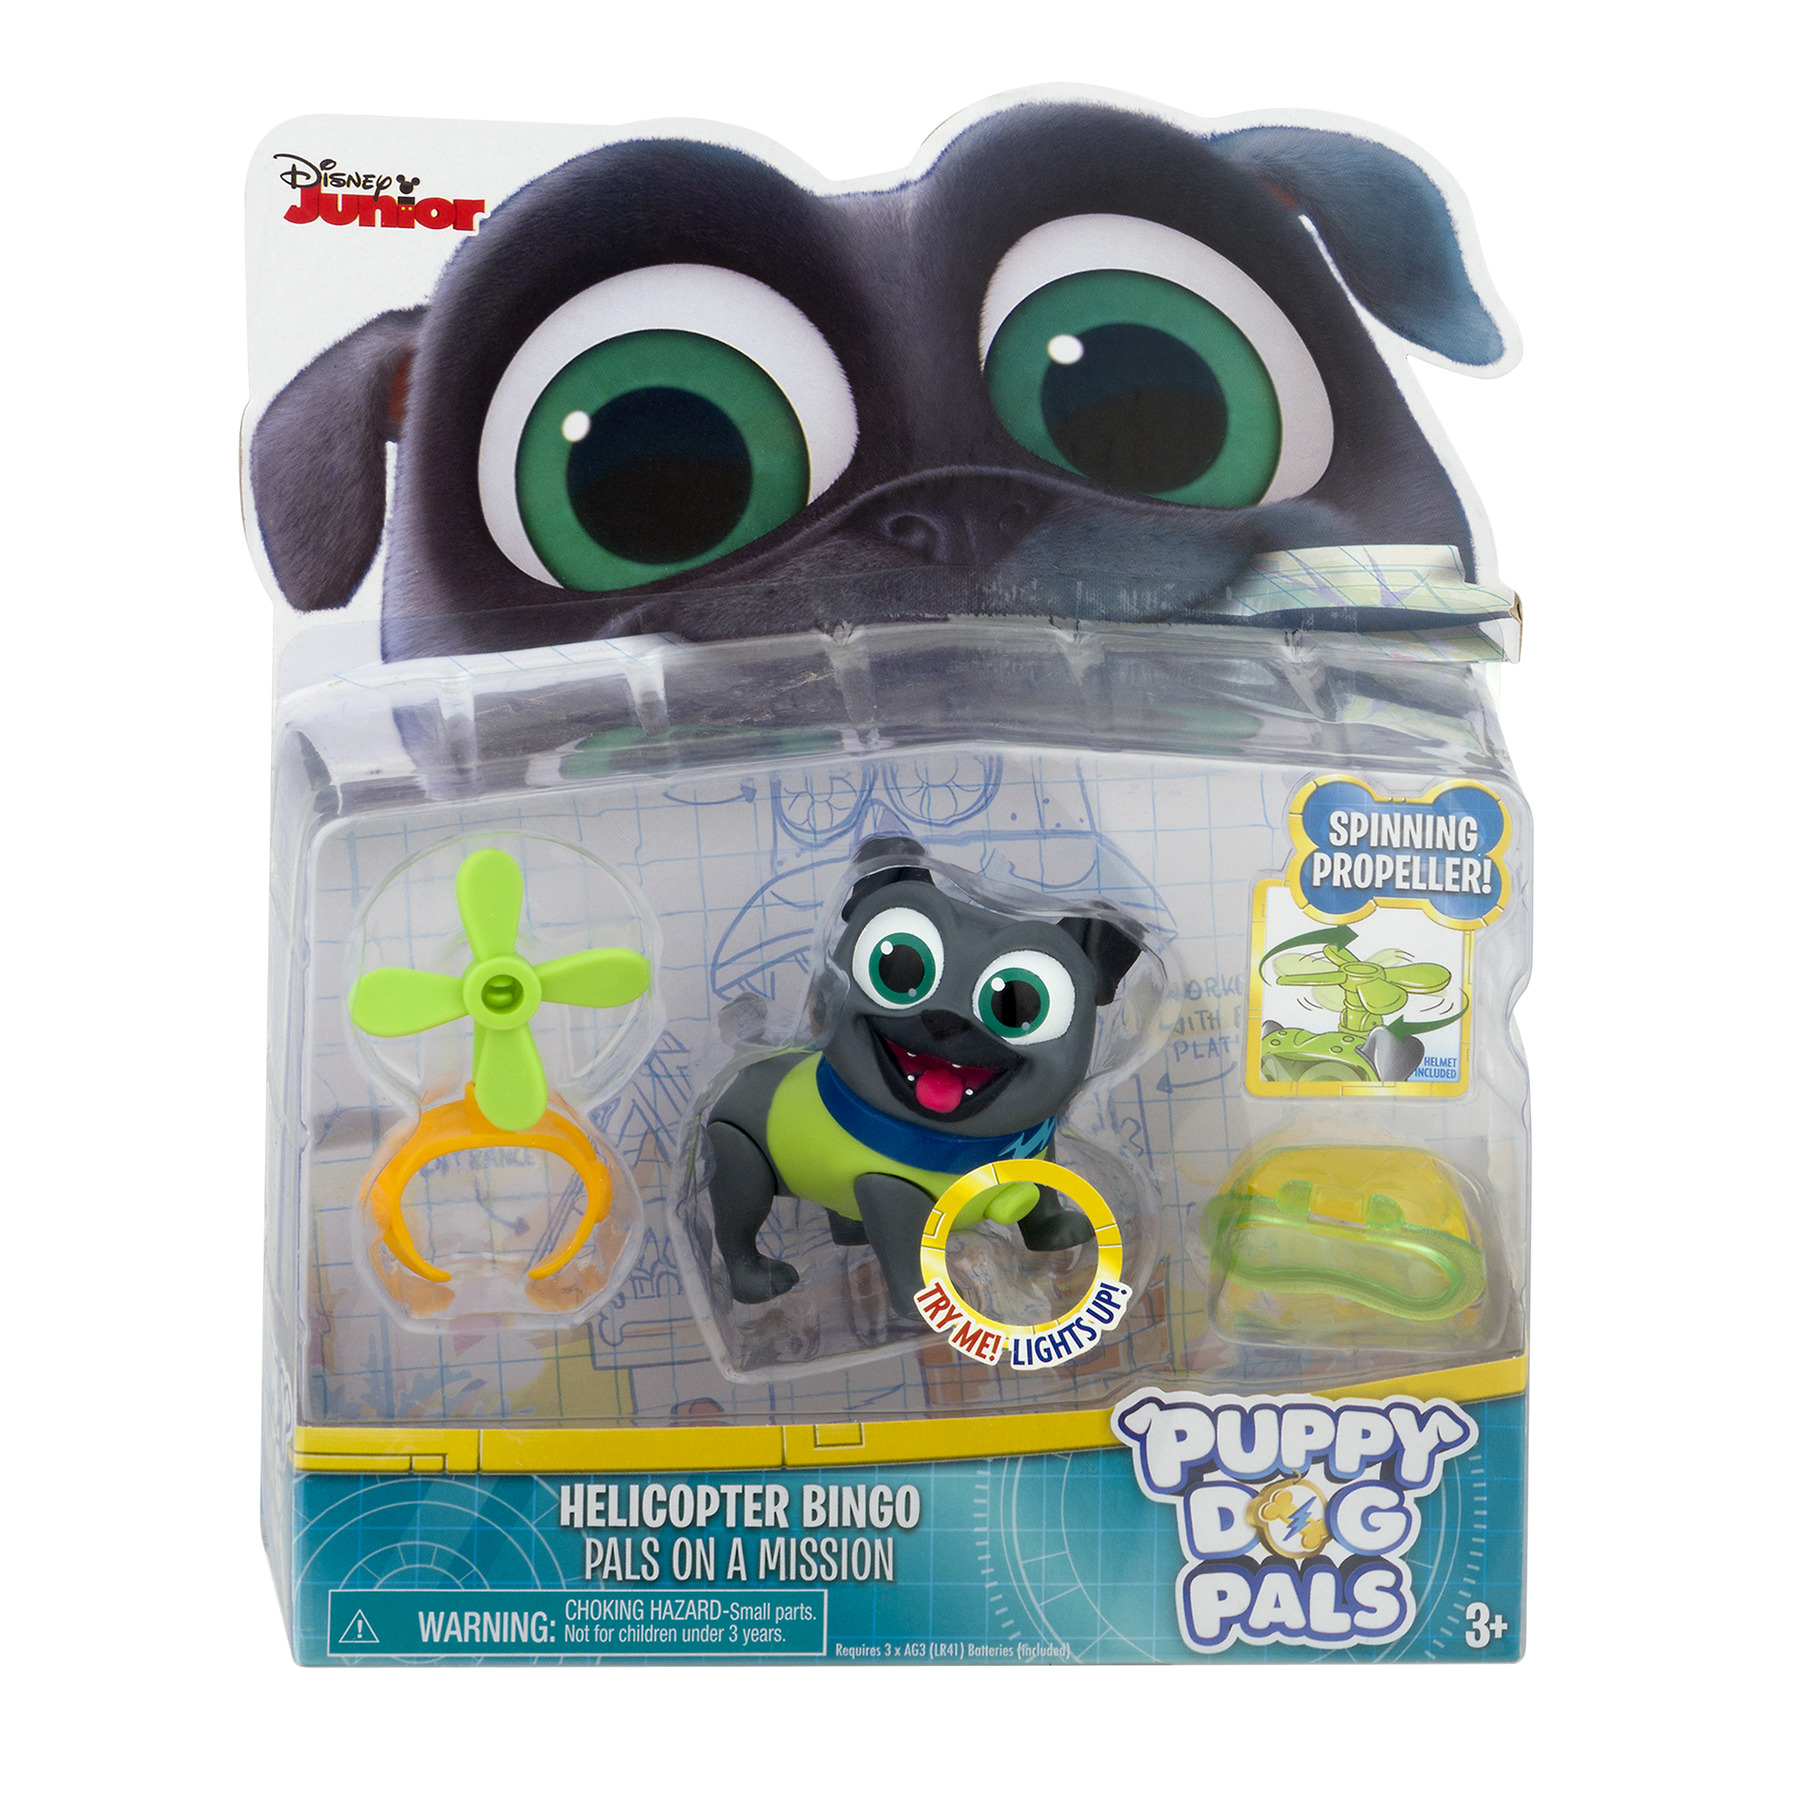 Puppy Dog Pals Light Up Pals On A Mission Bingo with Helicopter and Helmet by Just Play